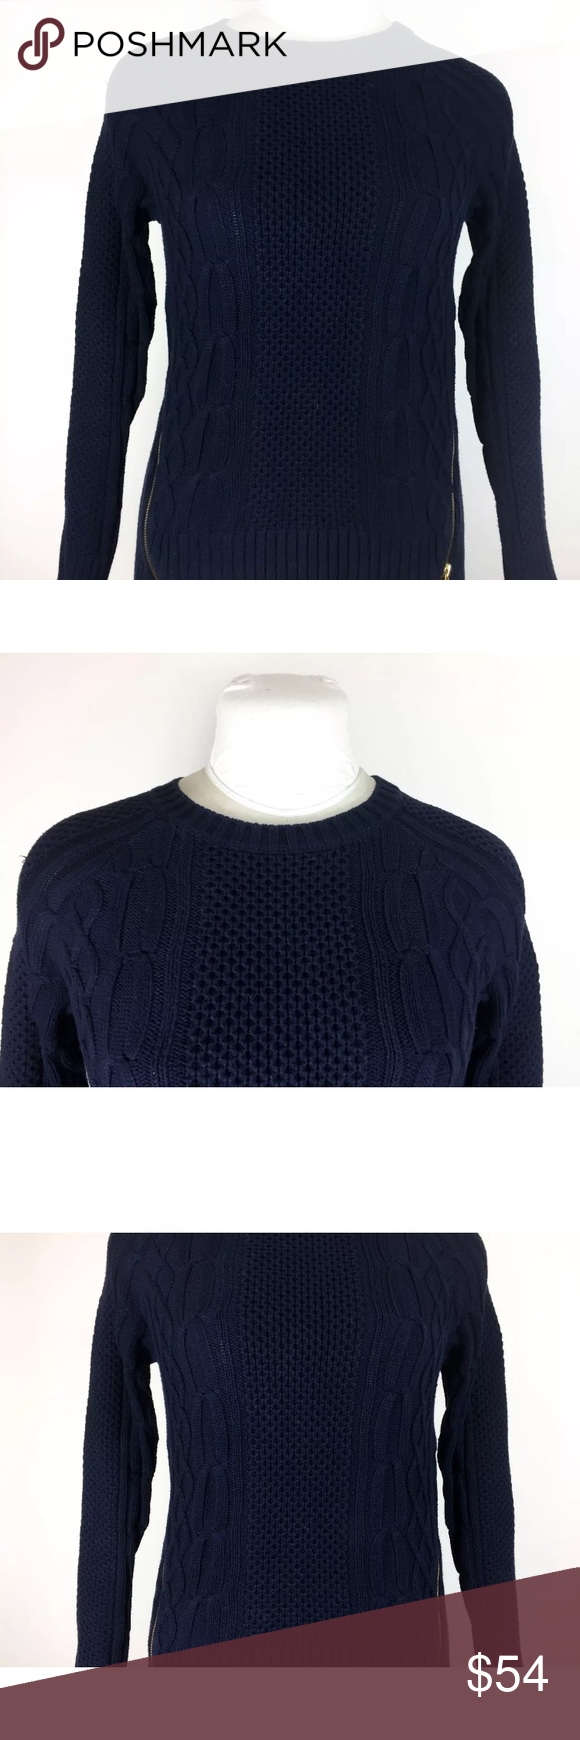 Cabi Navy Blue Sweater Style #899 Zipper Pullover Cabi Navy Blue ...